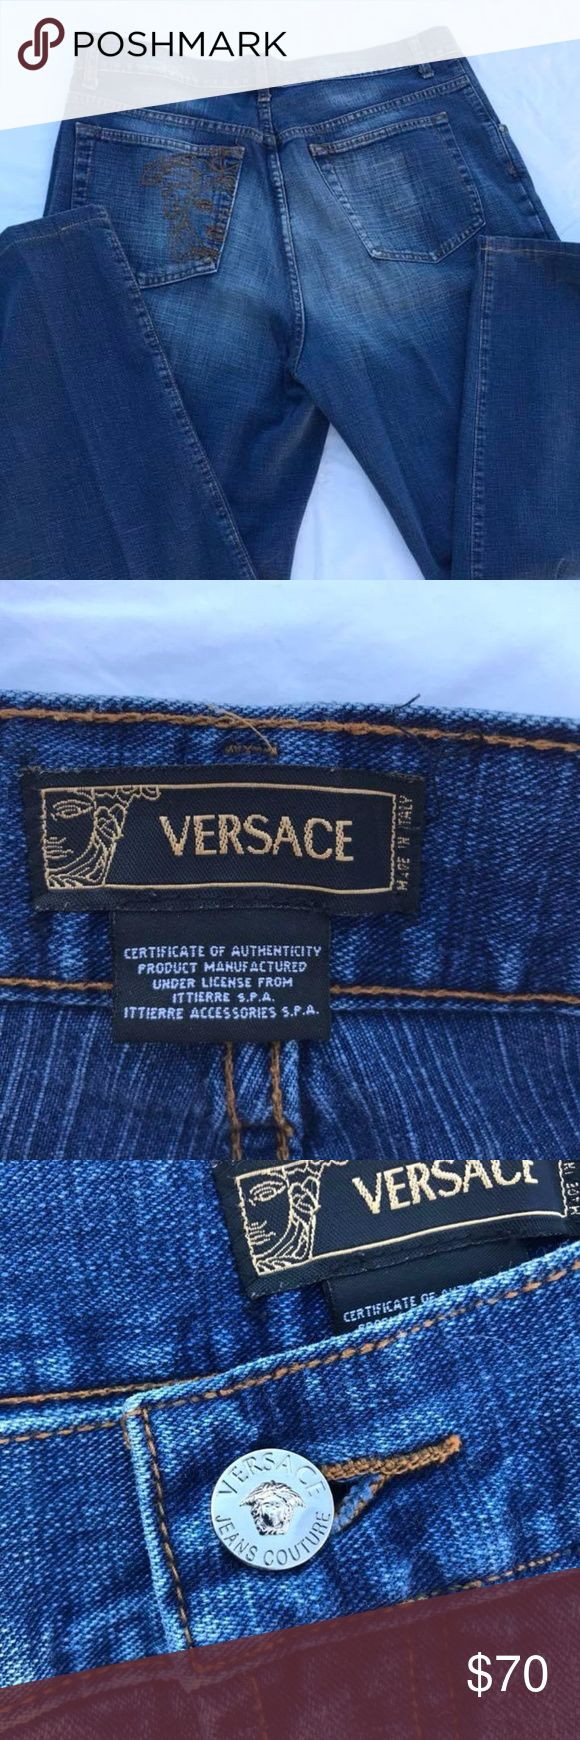 """monday Sale ****VERSACE Jeans Men's denim pants 38 Versace Denim Jeans Excellent  No rips or stains size 38 54 approx inseam 29""""  Please see photos Thank you!!!  NOTE:   I list for others as well so items may come from a home with pets or smokers.   Also, I travel several days out of the month, usually 3 days at a time  sku799teal4wgw Versace Jeans"""